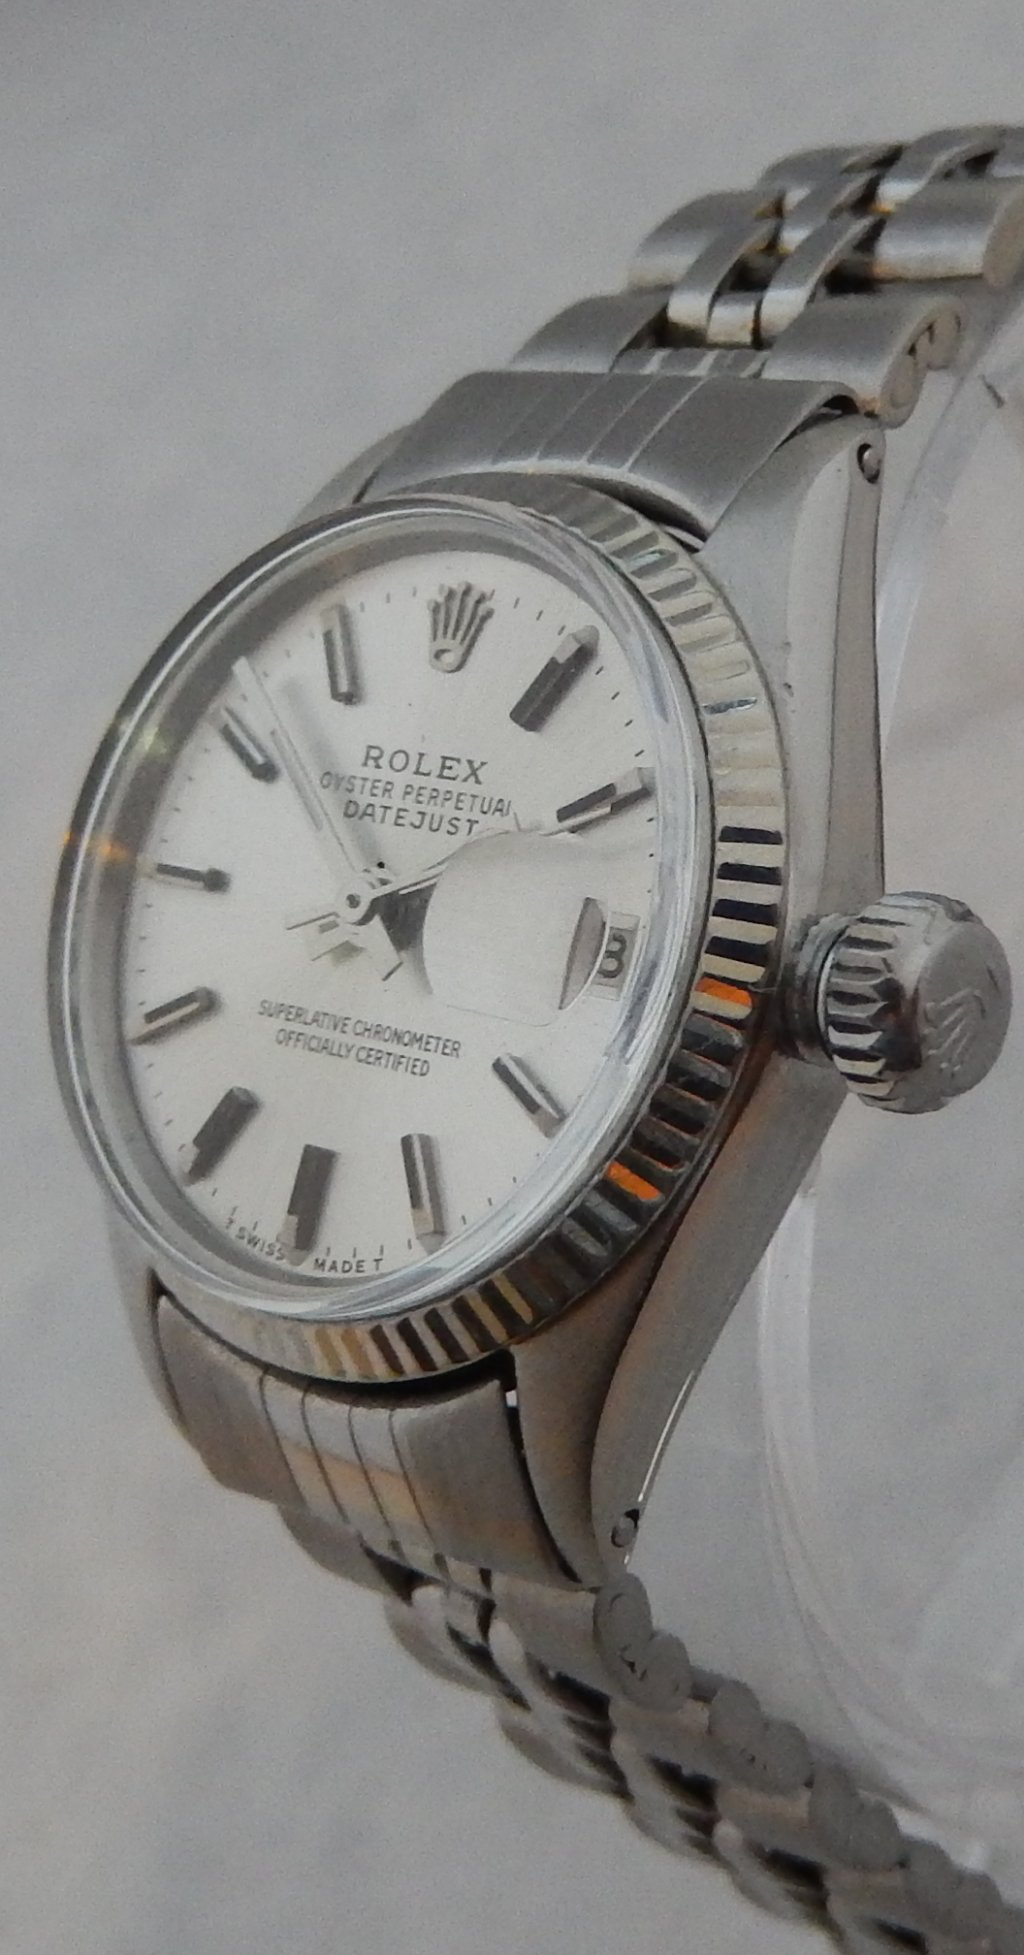 Details about Rolex Oyster Perpetual Datejust SS \u0026 White Gold Ladies Watch  Jubilee Band 1963